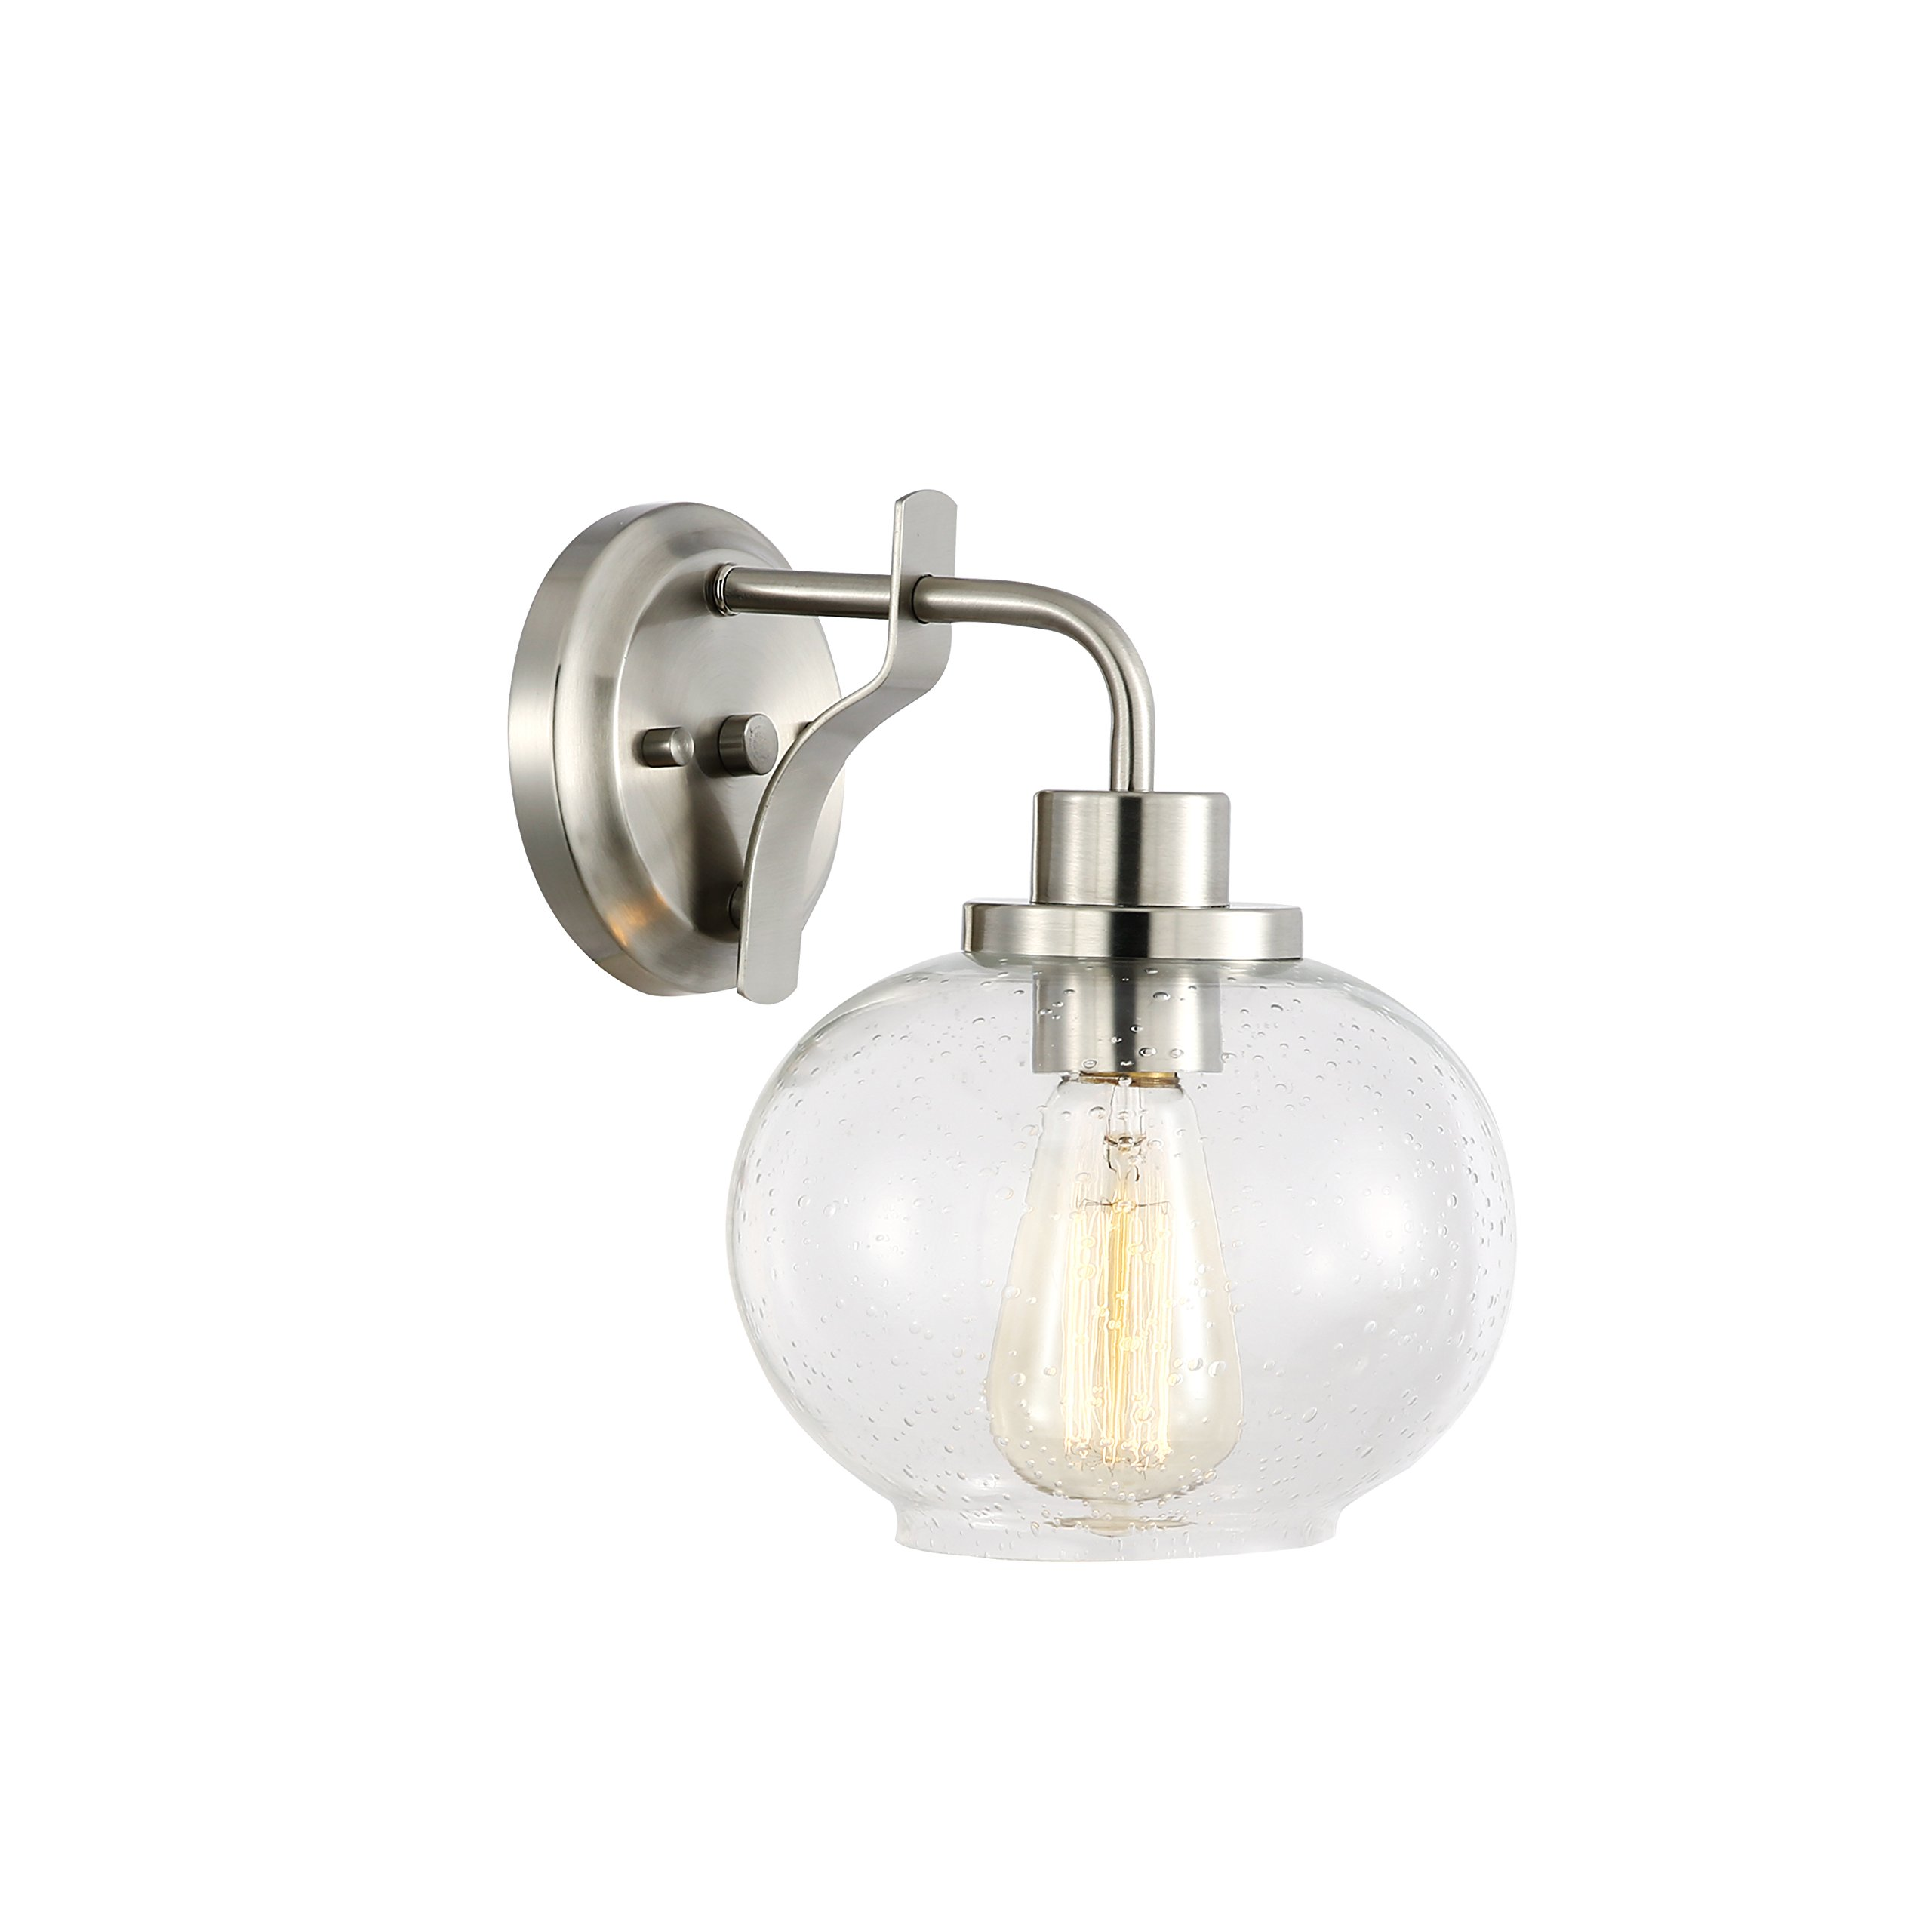 Light Society Sheridan Seeded Wall Sconce, Satin Nickel with Handblown Clear Glass Shade, Vintage Industrial Modern Lighting Fixture (LS-W245-SN)